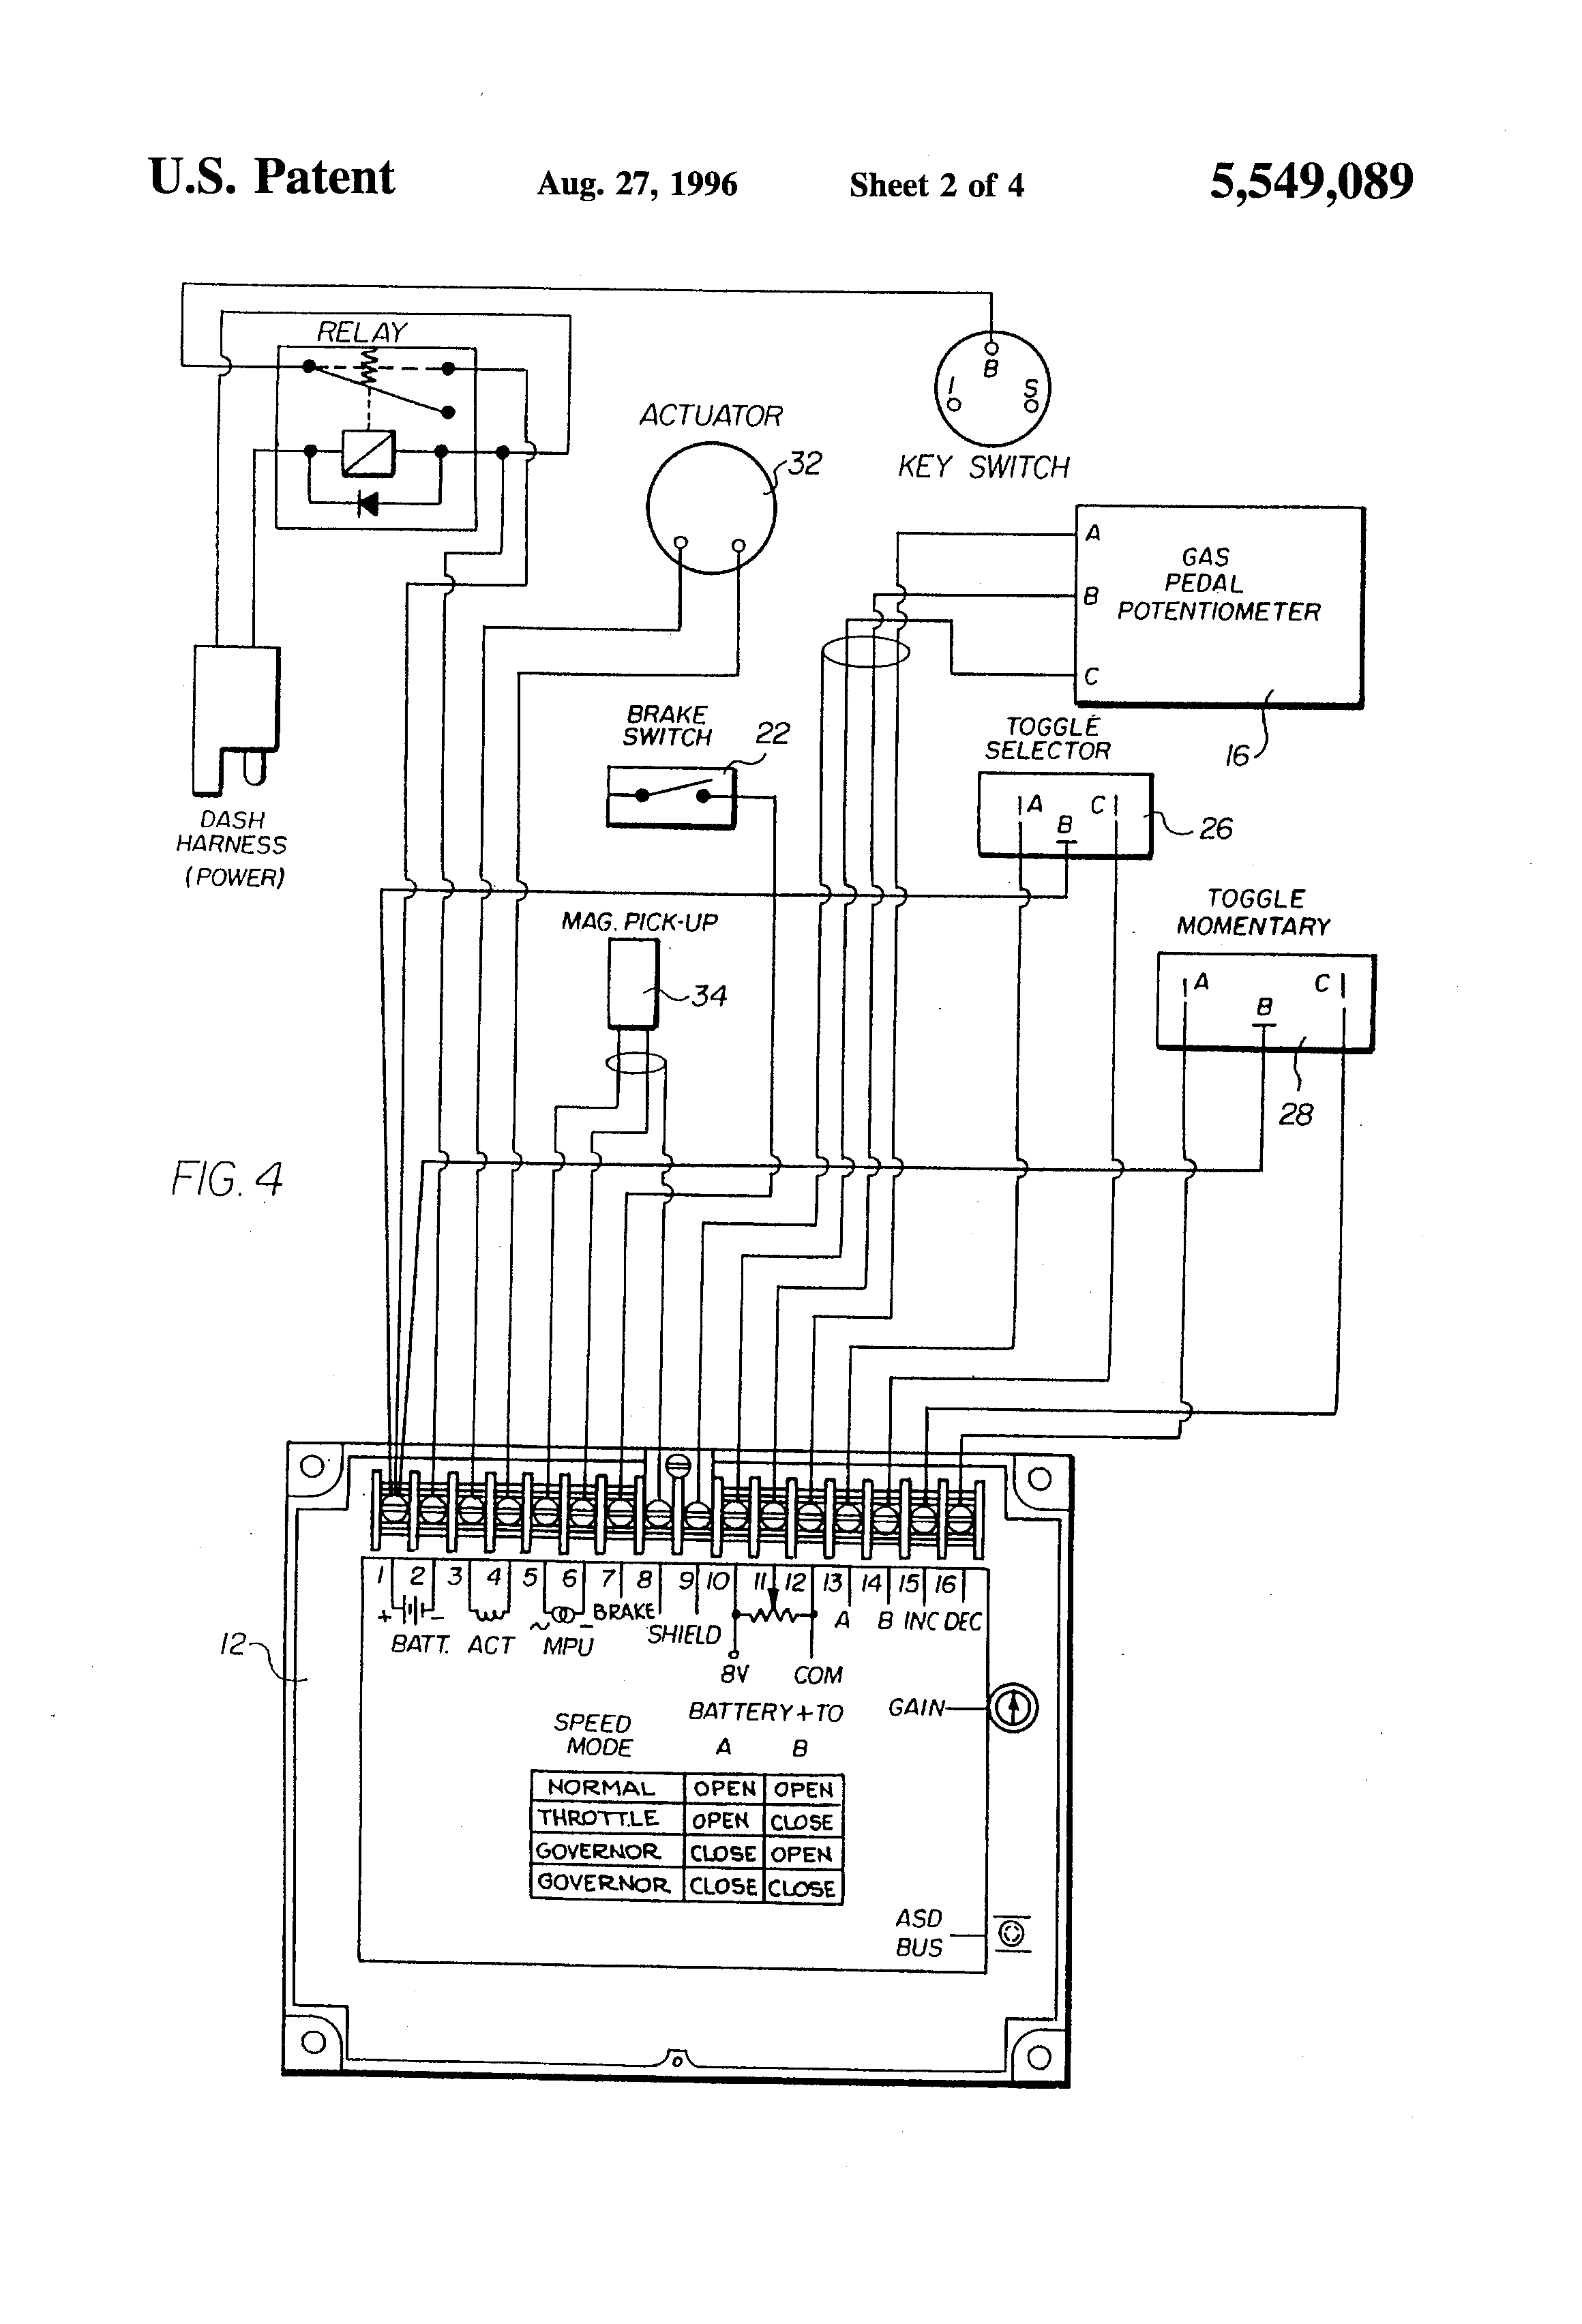 [DIAGRAM_3NM]  Cushman Golfster Wiring Diagram - Subaru Justy Alternator Wiring Diagram  for Wiring Diagram Schematics | Cushman Hawk Wiring Diagram |  | Wiring Diagram Schematics